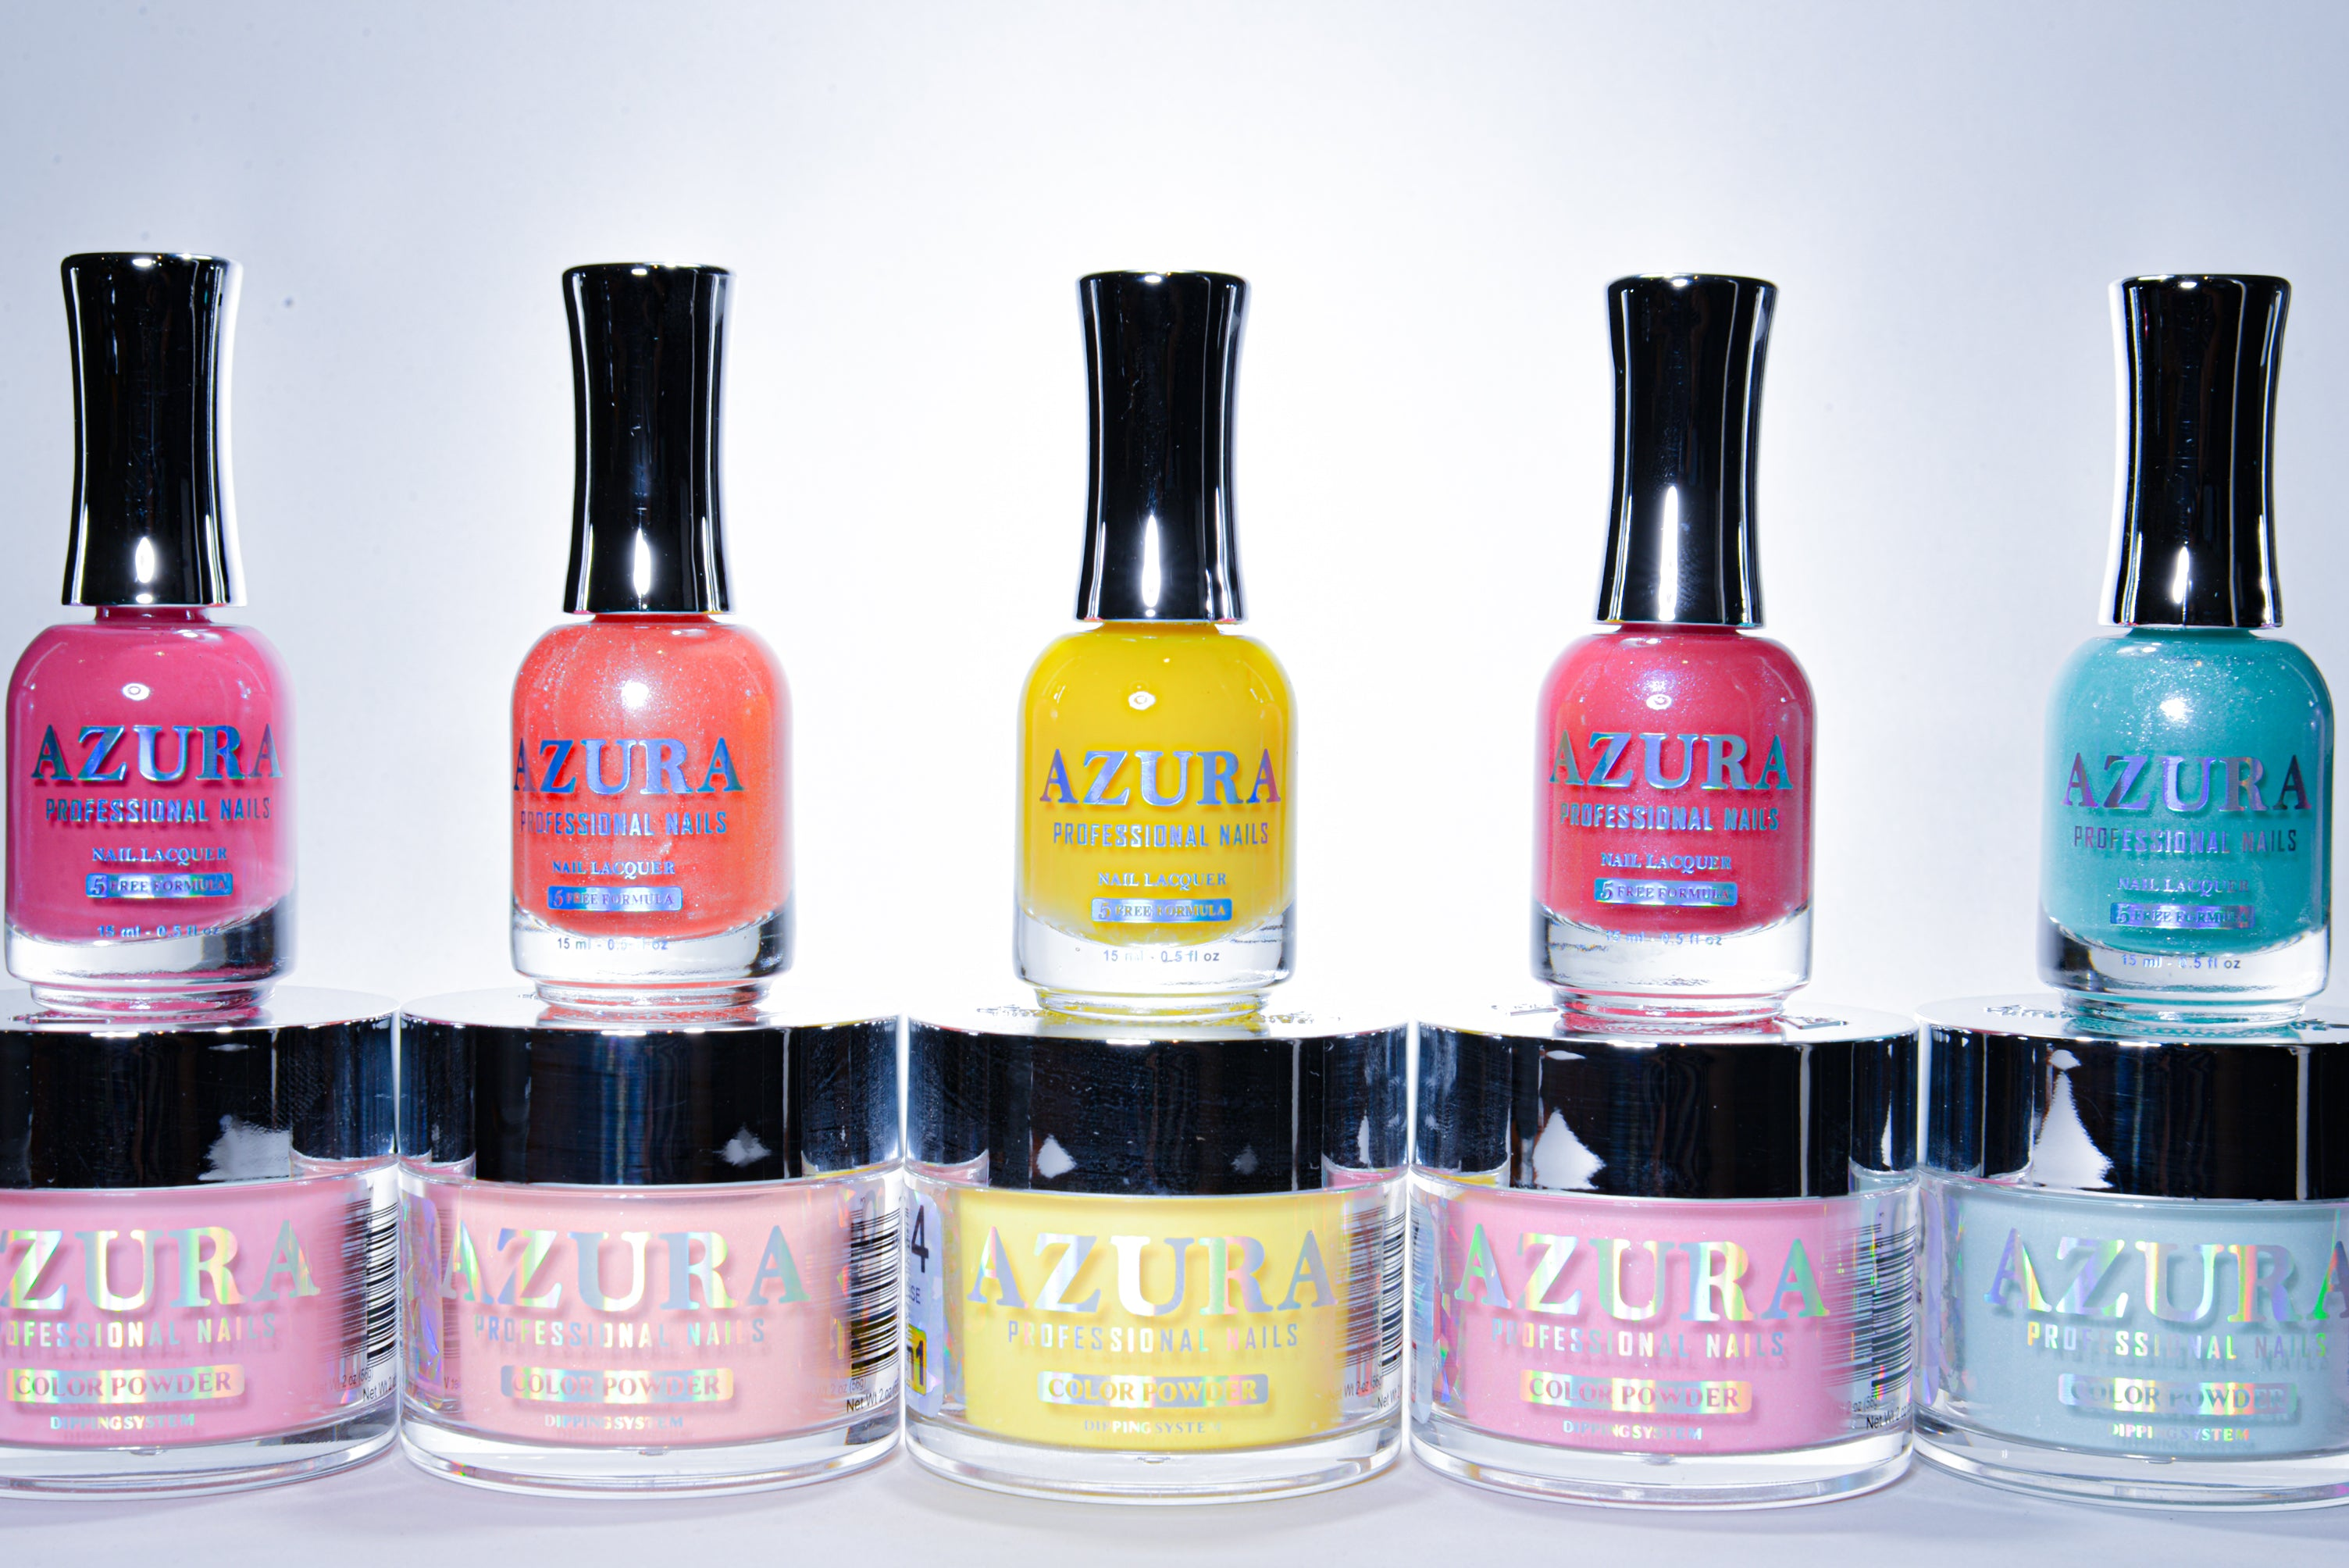 AZURA 3in1 - Gel Lacquer & Dip Powder only